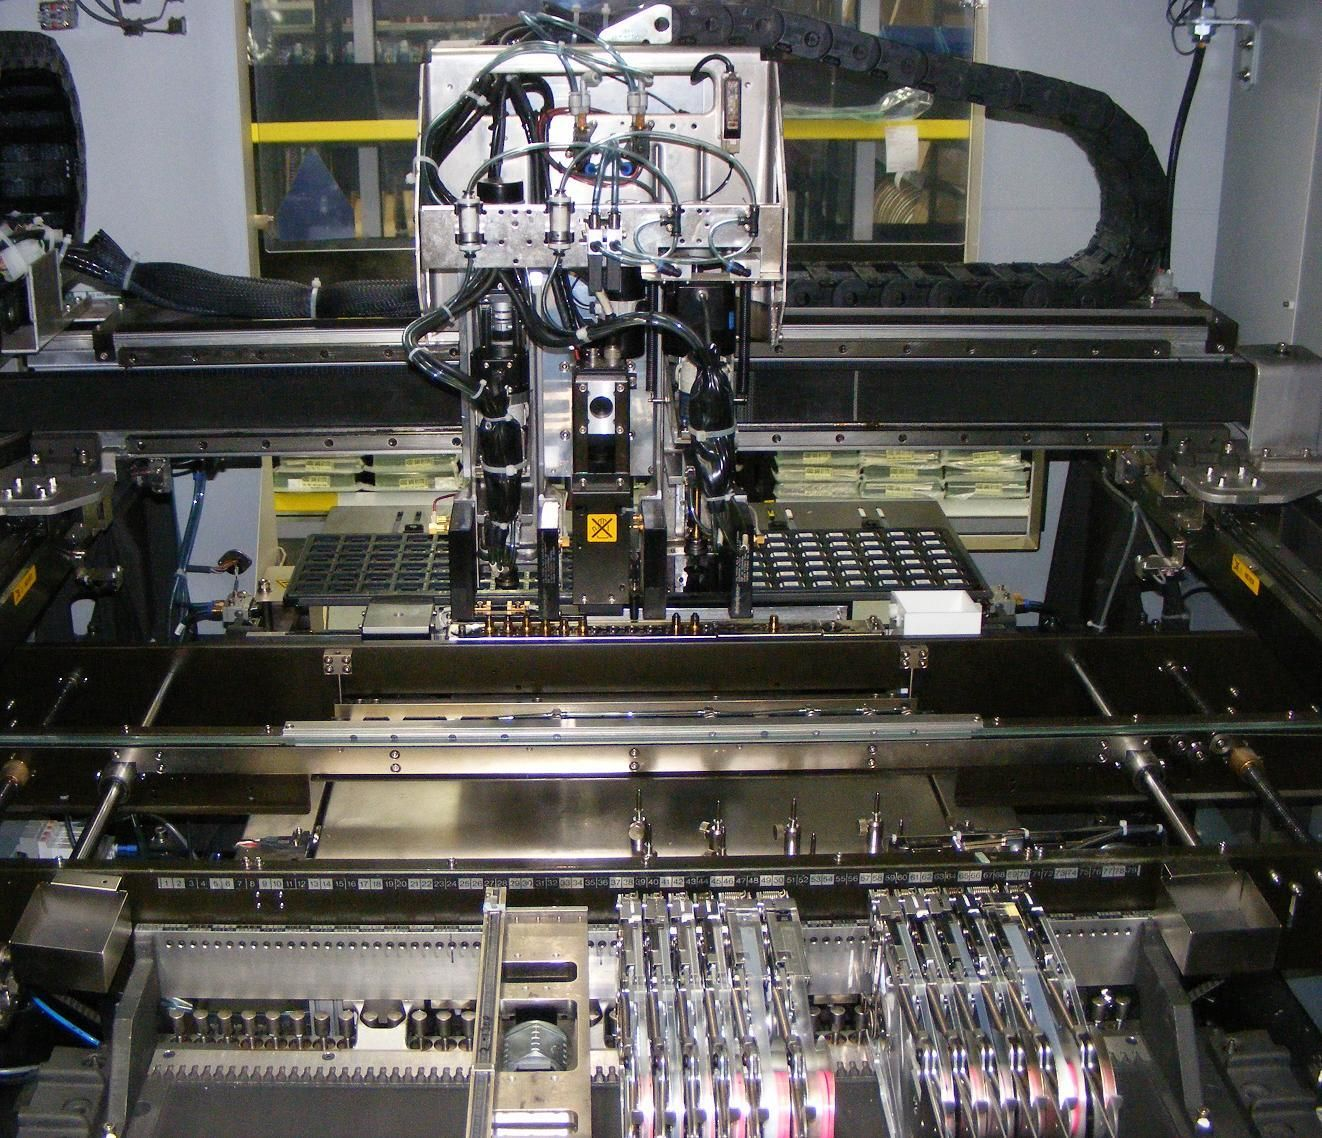 Smt Surface Mount Technology Component Placement Systems Commonly Called Pick And Place Machines Or P Ps Are Robotic Ma Machine Machinery Industry Research